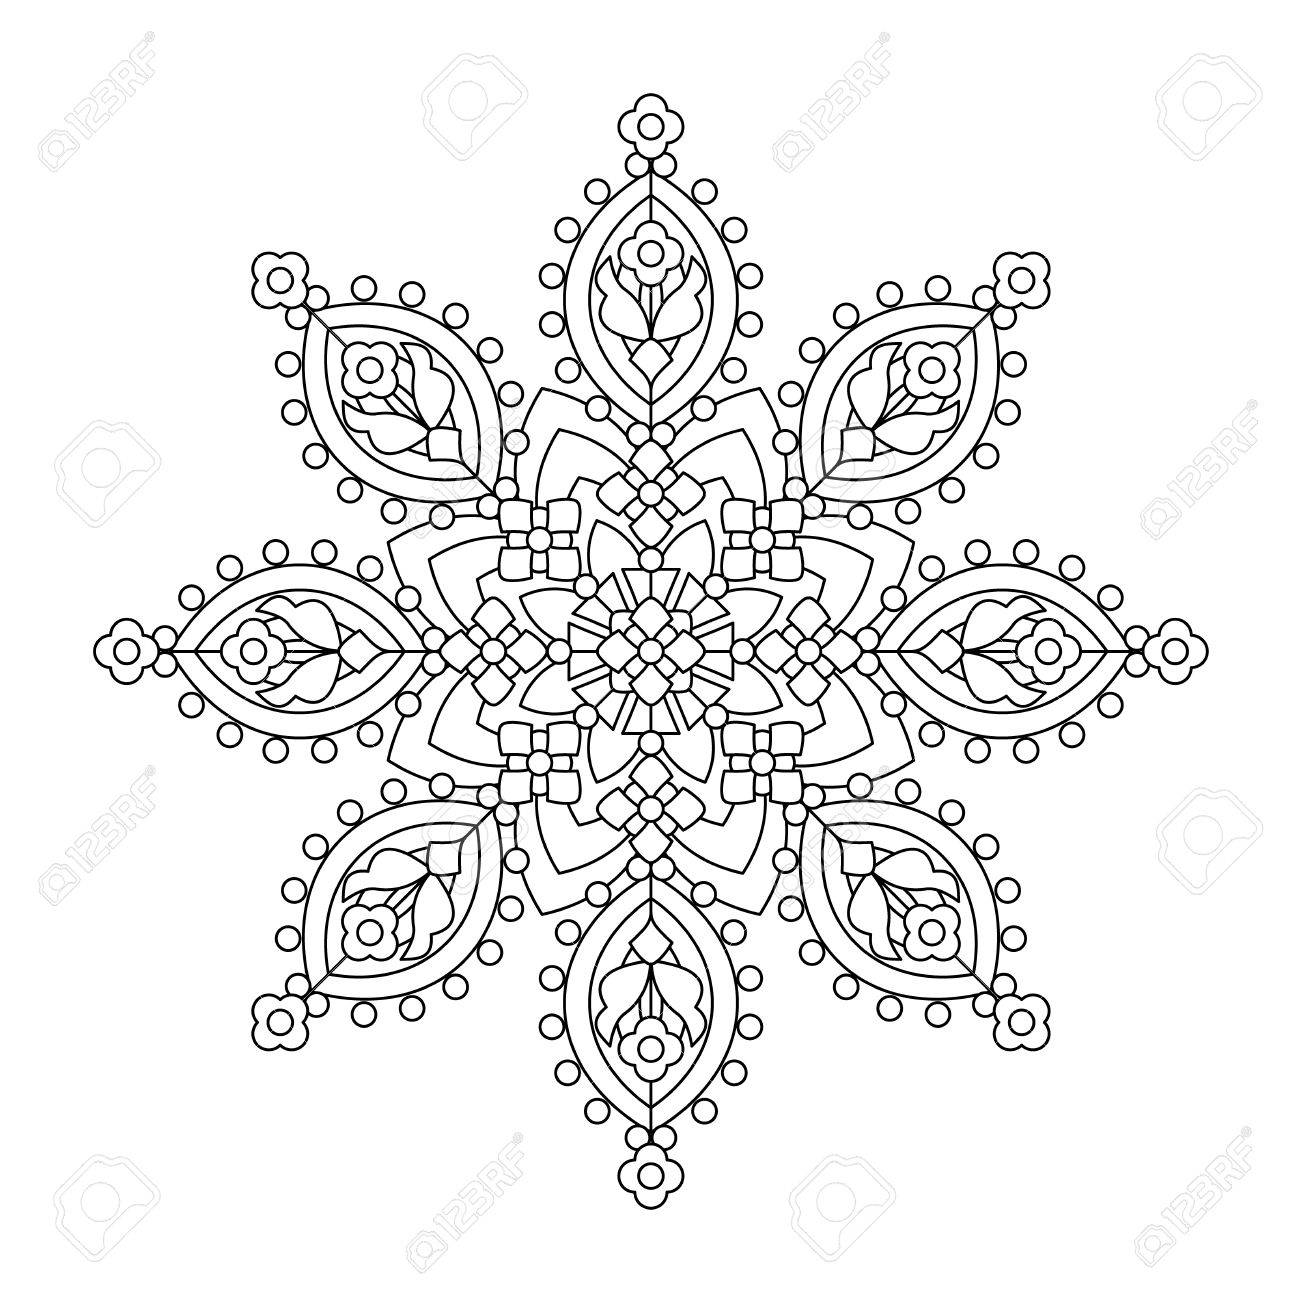 Abstract mandala or whimsical snowflake line art design or coloring page - 59069430